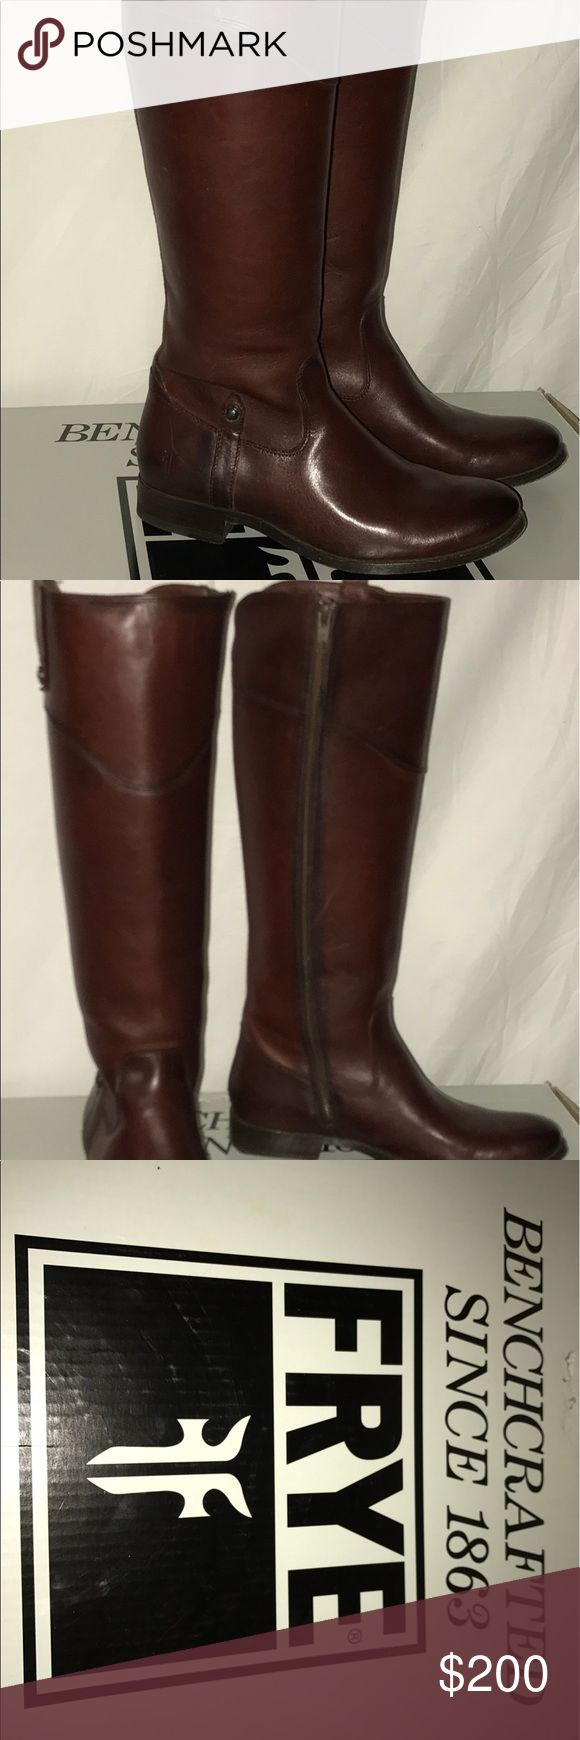 Nib FRYE MELISSA TAB BOOTS NIB FRYE Boots (worn out of store once) excellent condition!!!! Frye Shoes Heeled Boots